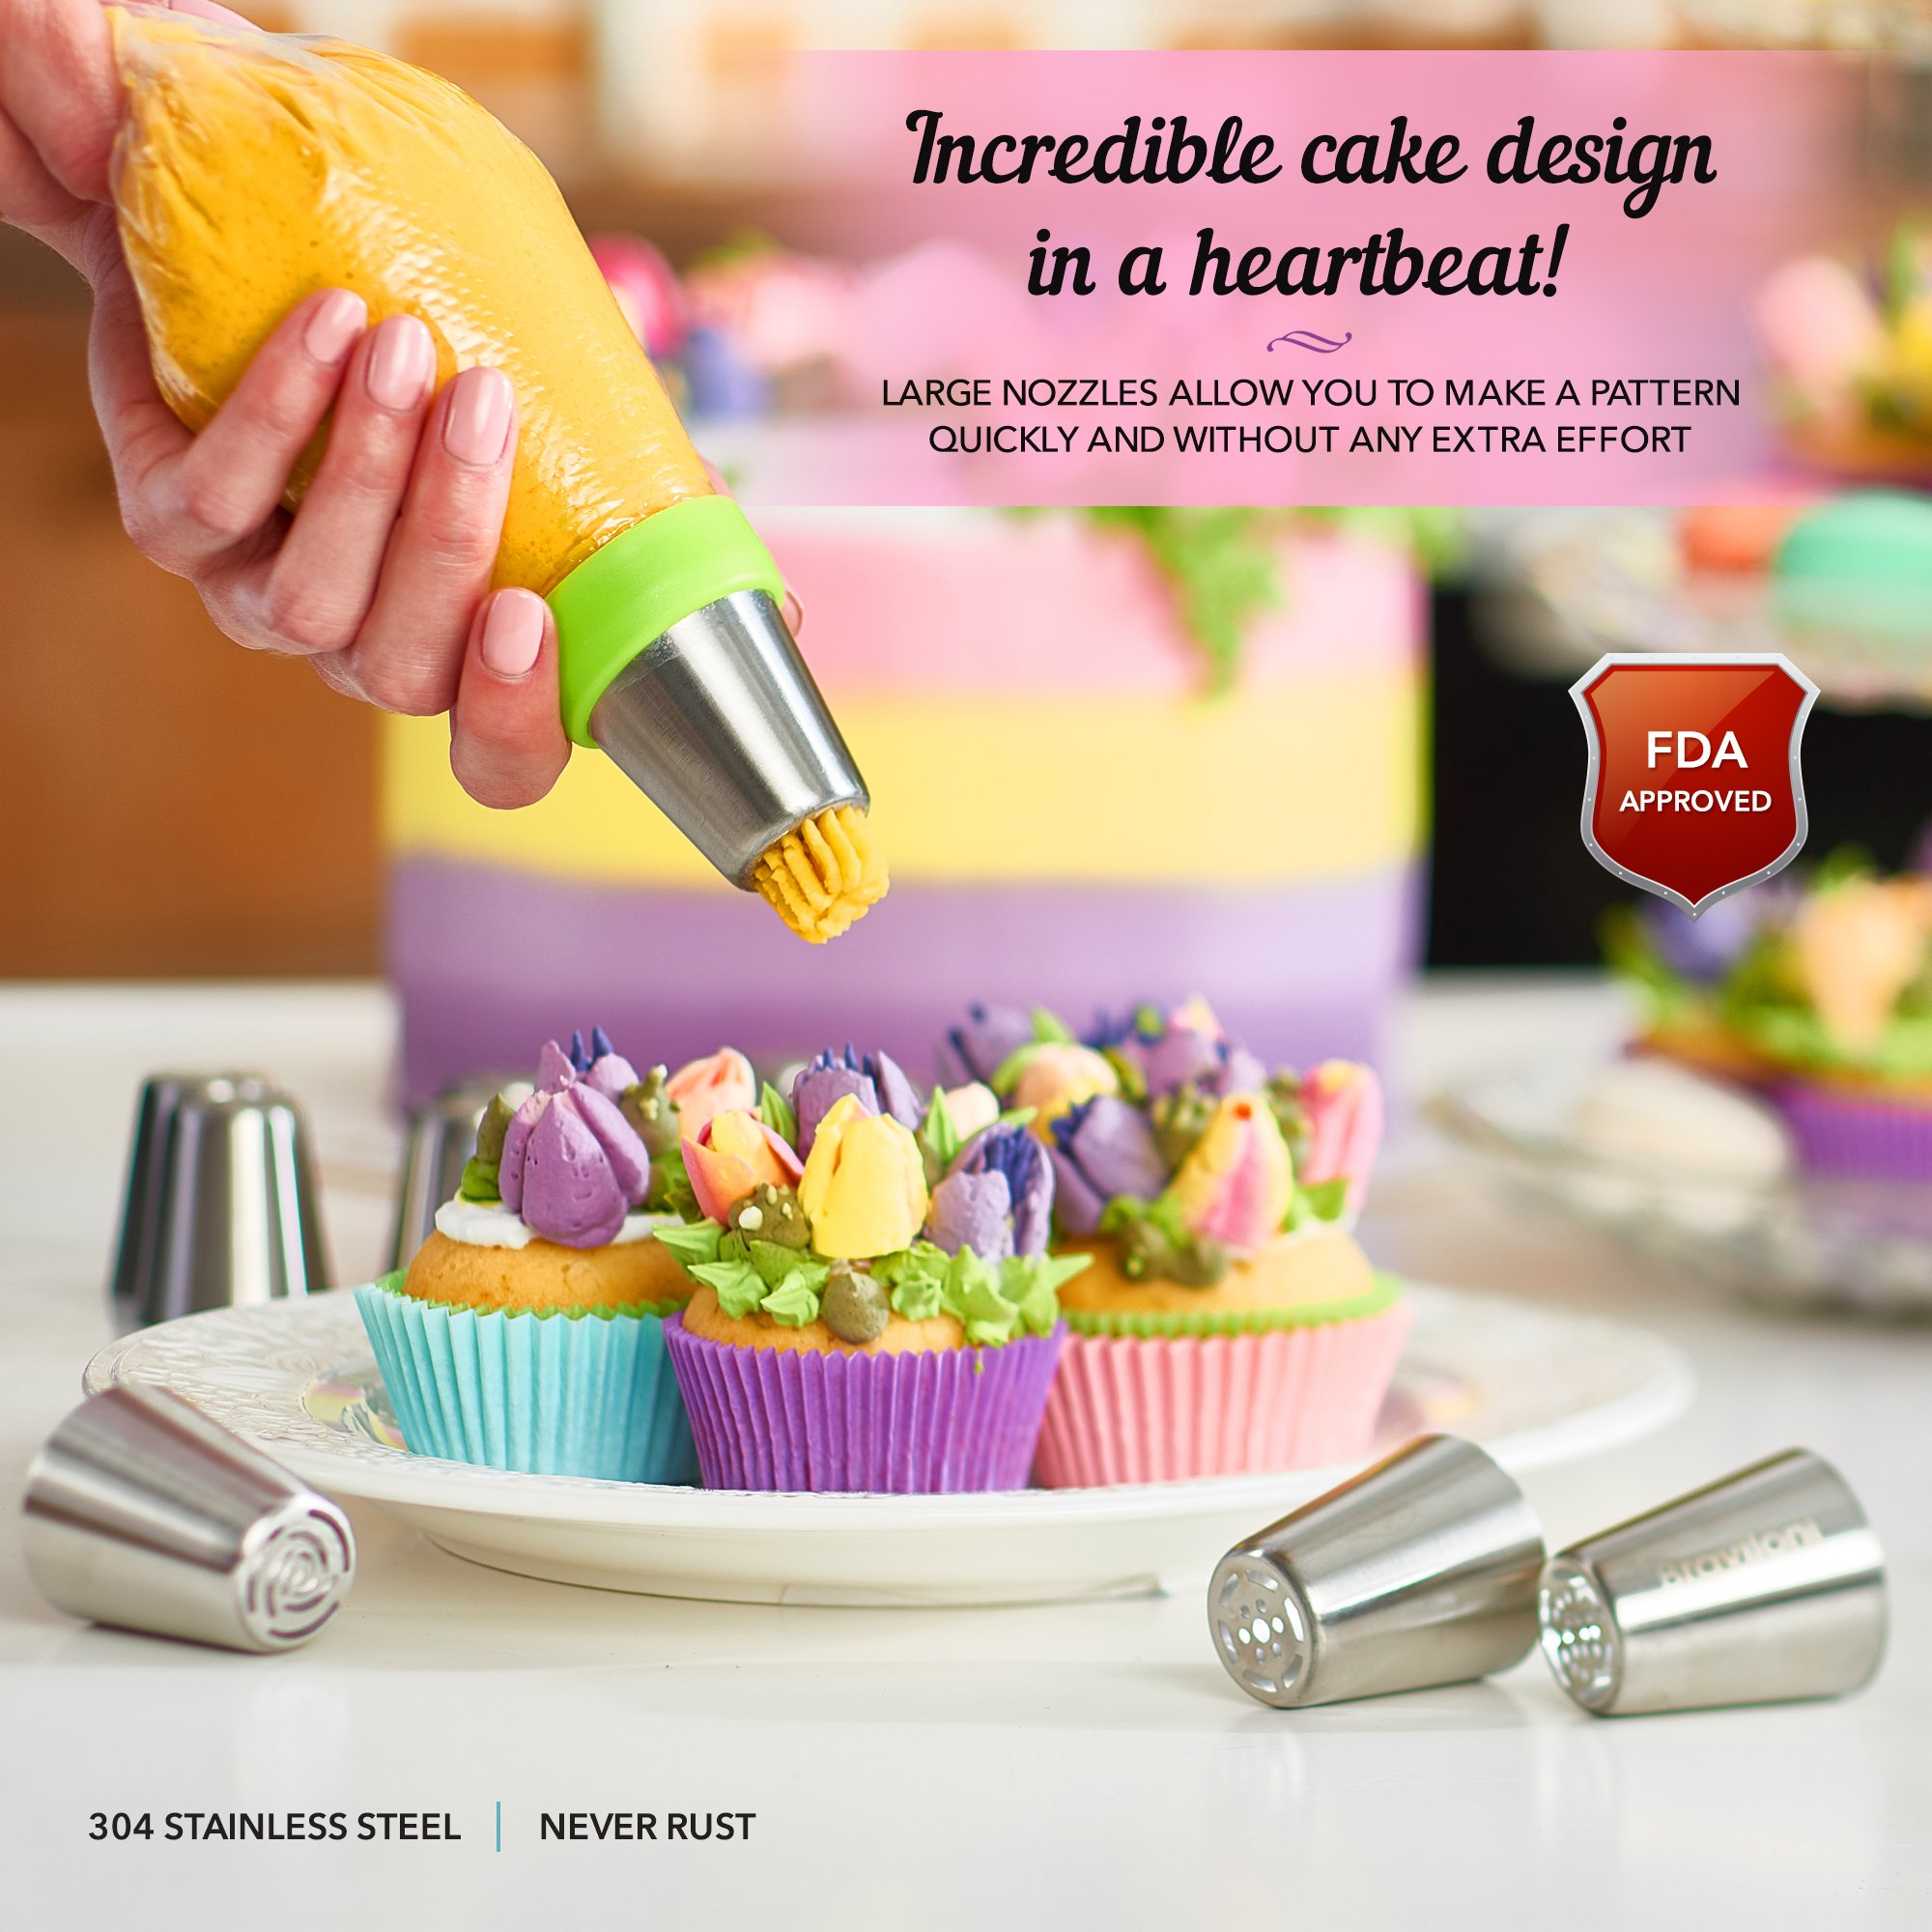 Russian Piping Tips - Cake Decorating Supplies - 39 Baking Supplies Set - 23 Icing Nozzles - 15 Pastry Disposable Bags & Coupler - Extra Large Decoration Kit - Best Kitchen Gift by Braviloni (Image #4)